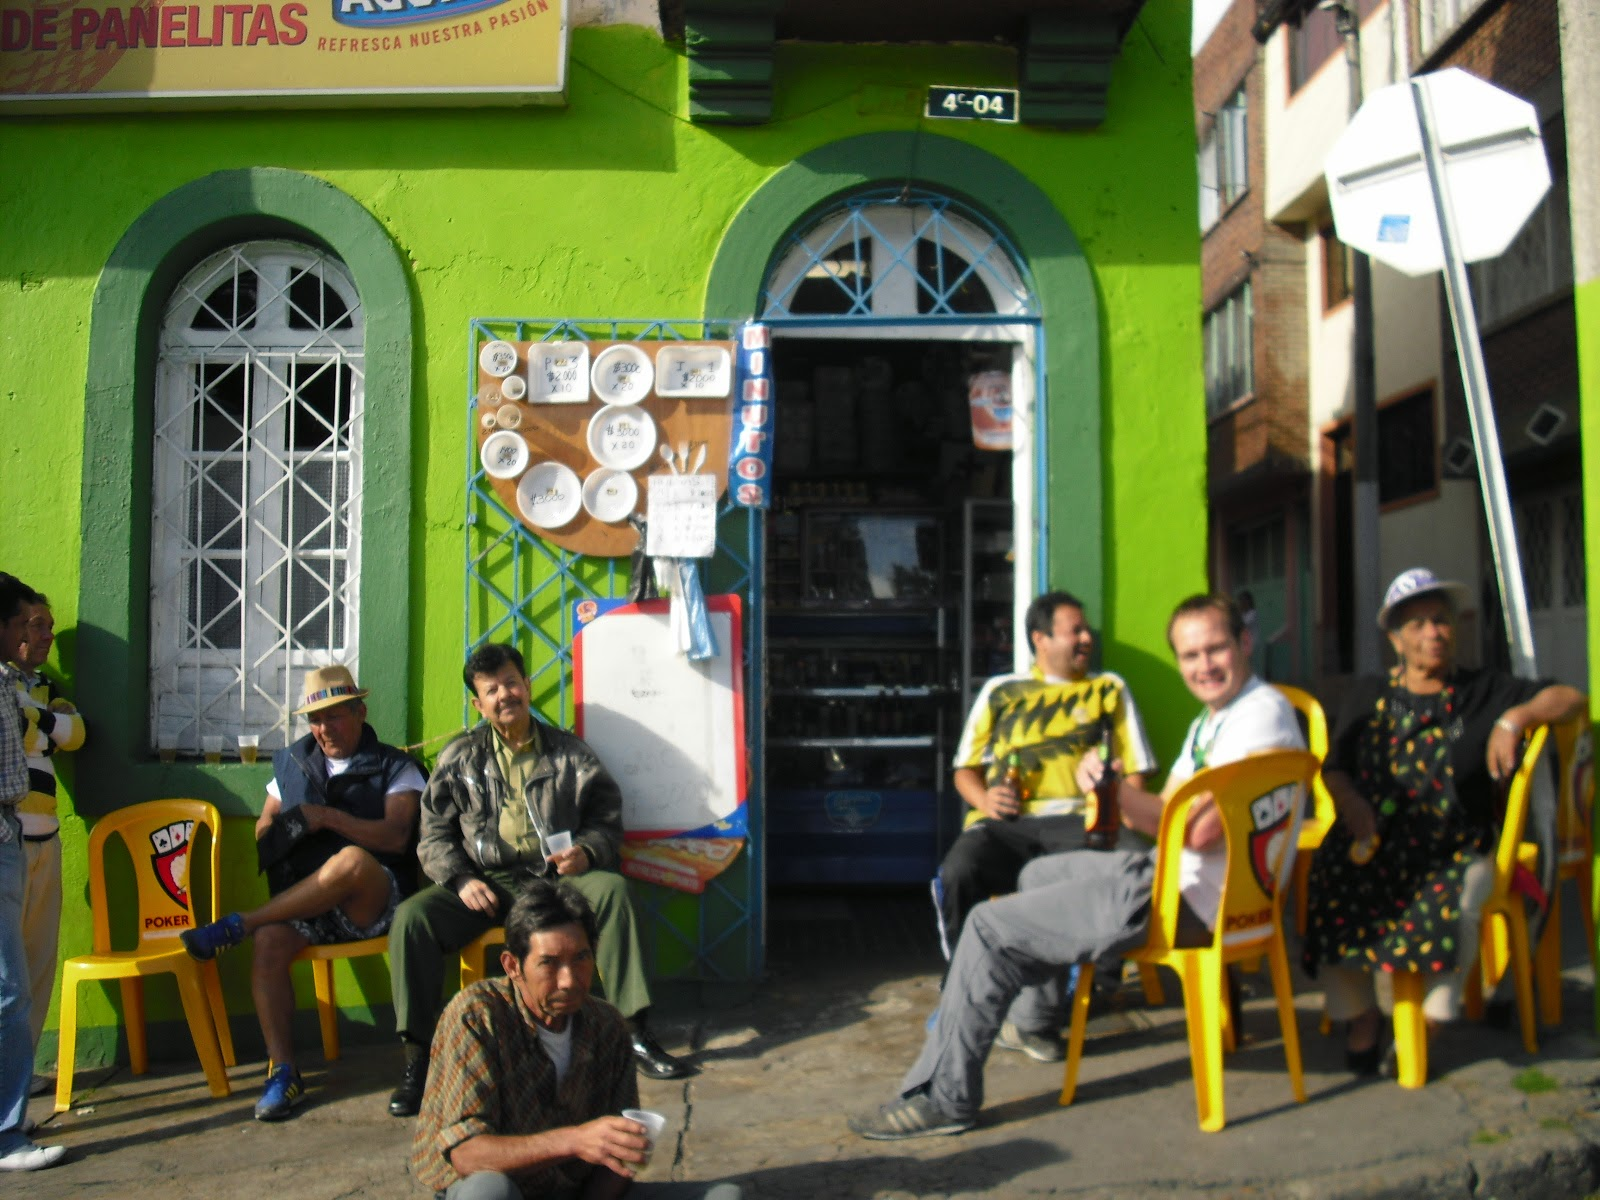 Enjoying the sun and beer at Don Fernando's, La Perseverancia, Bogotá, Colombia.